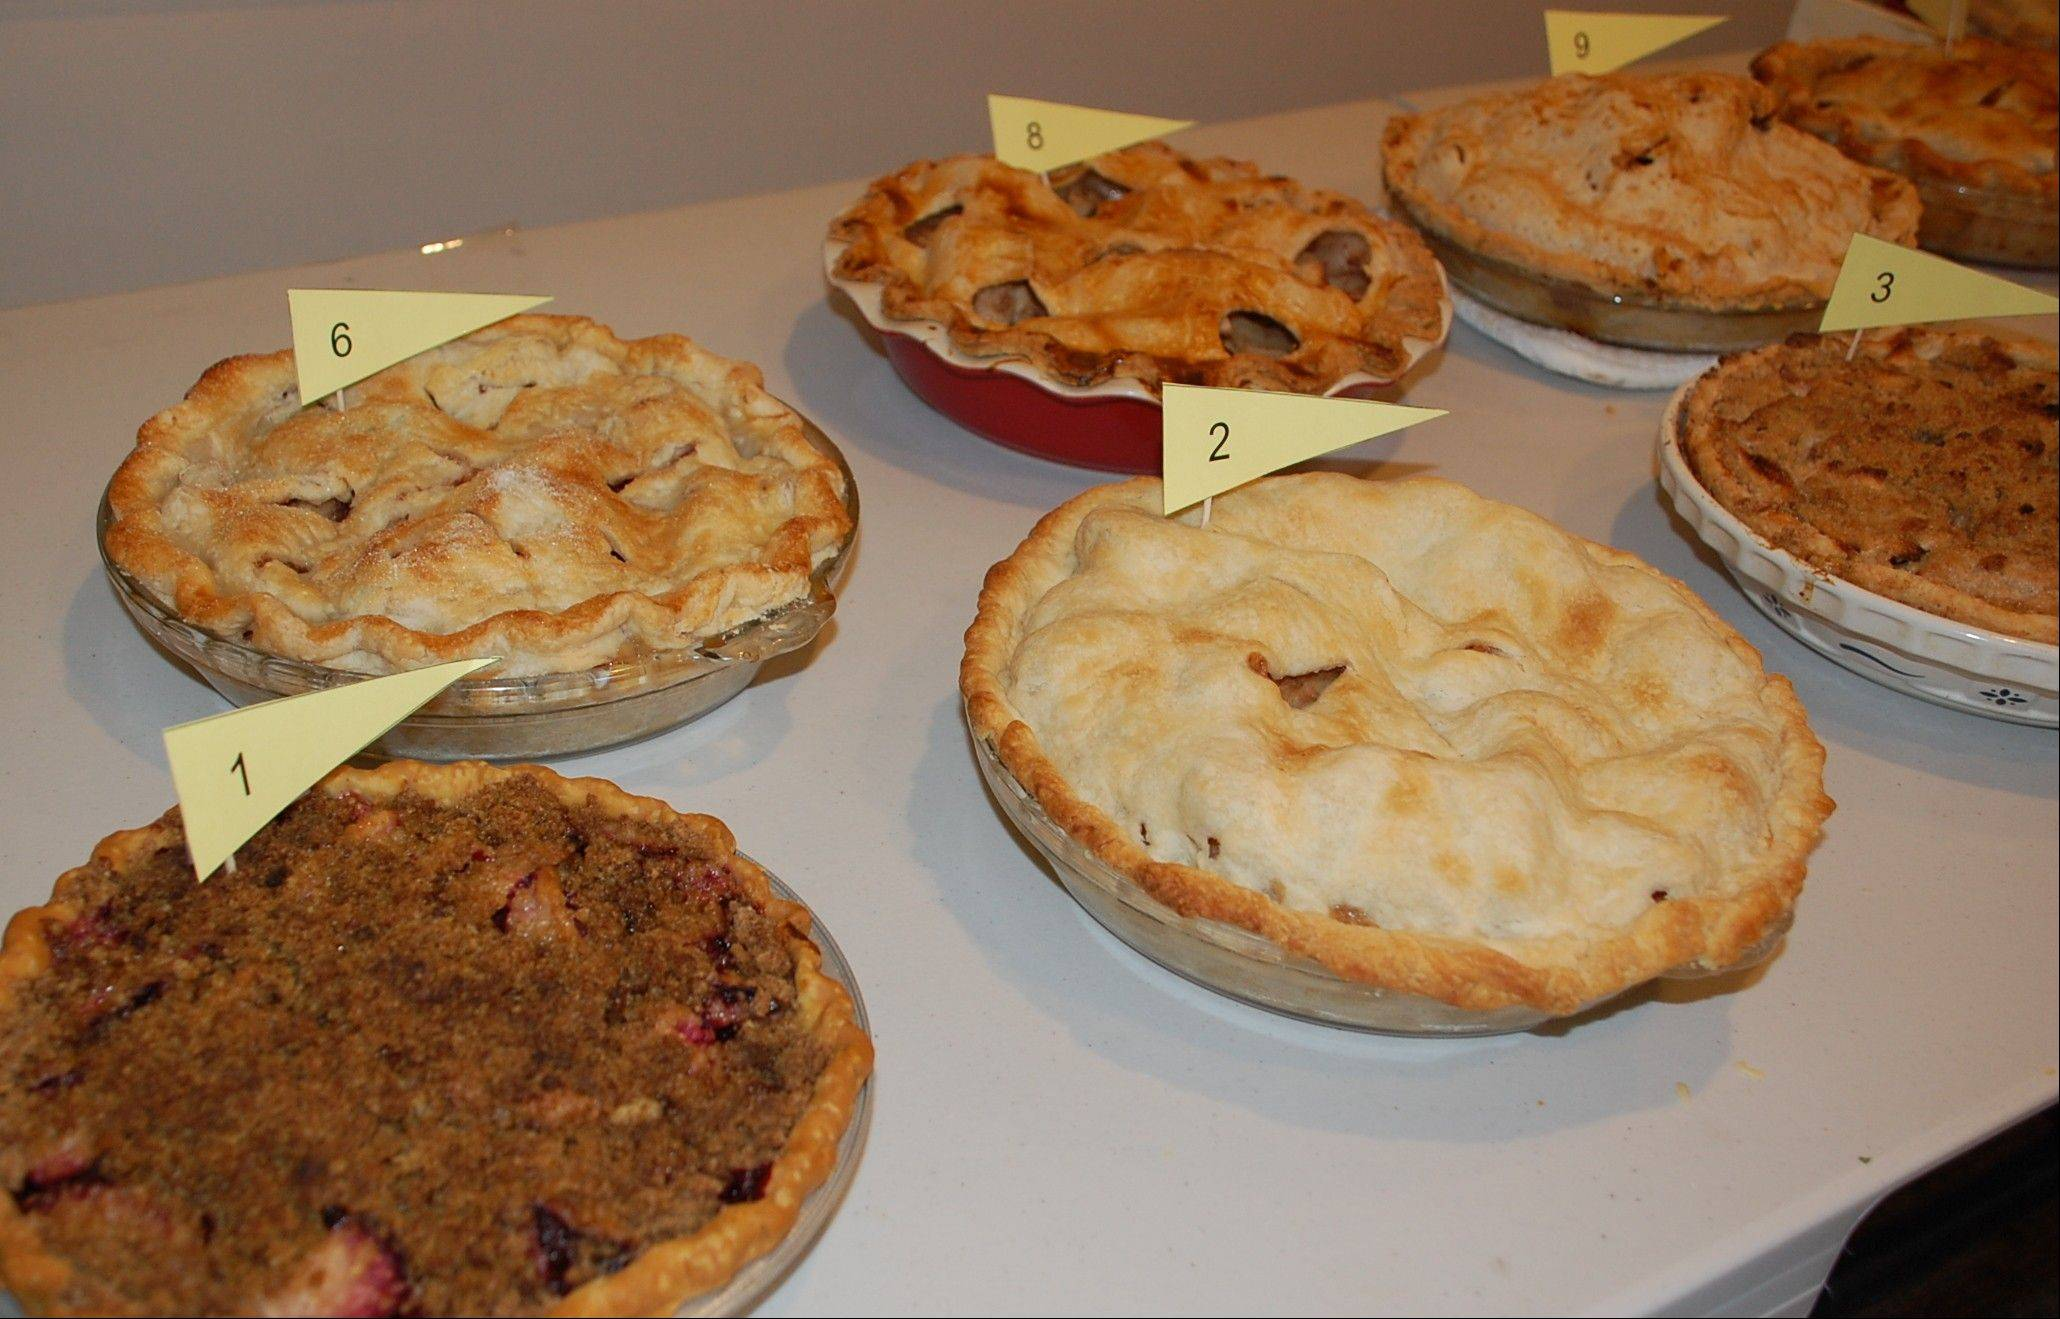 A panel of judges, including our Stephanie Penick, judged pie No. 6 the winner of the 2012 apple pie baking contest at Naper Settlement and declared Beatrice McGovern the winner.